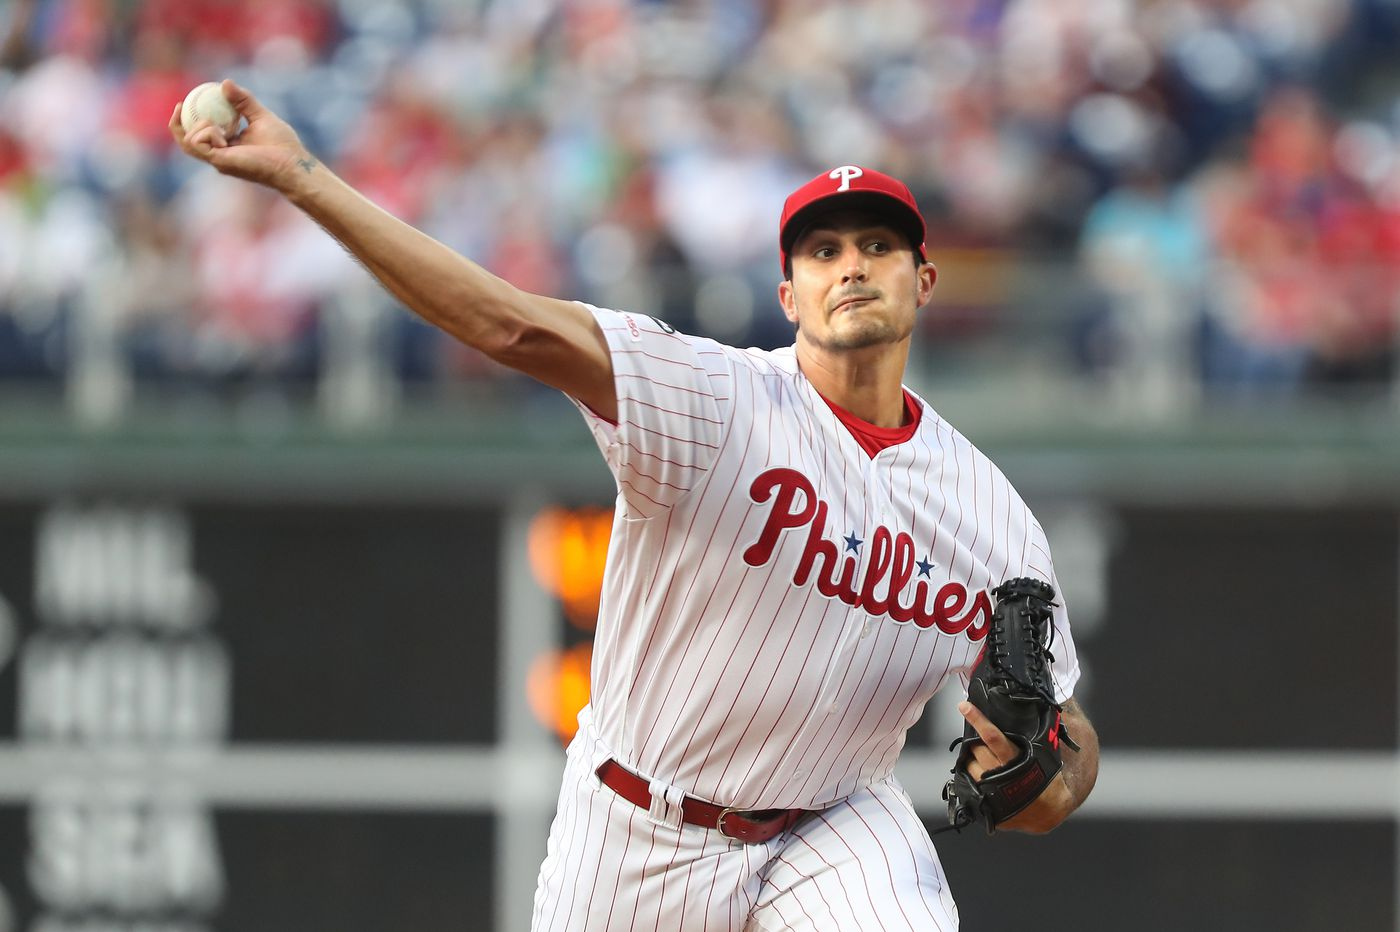 Bats disappear in Zach Eflin's solid start, Phillies lose to D'backs, 2-0